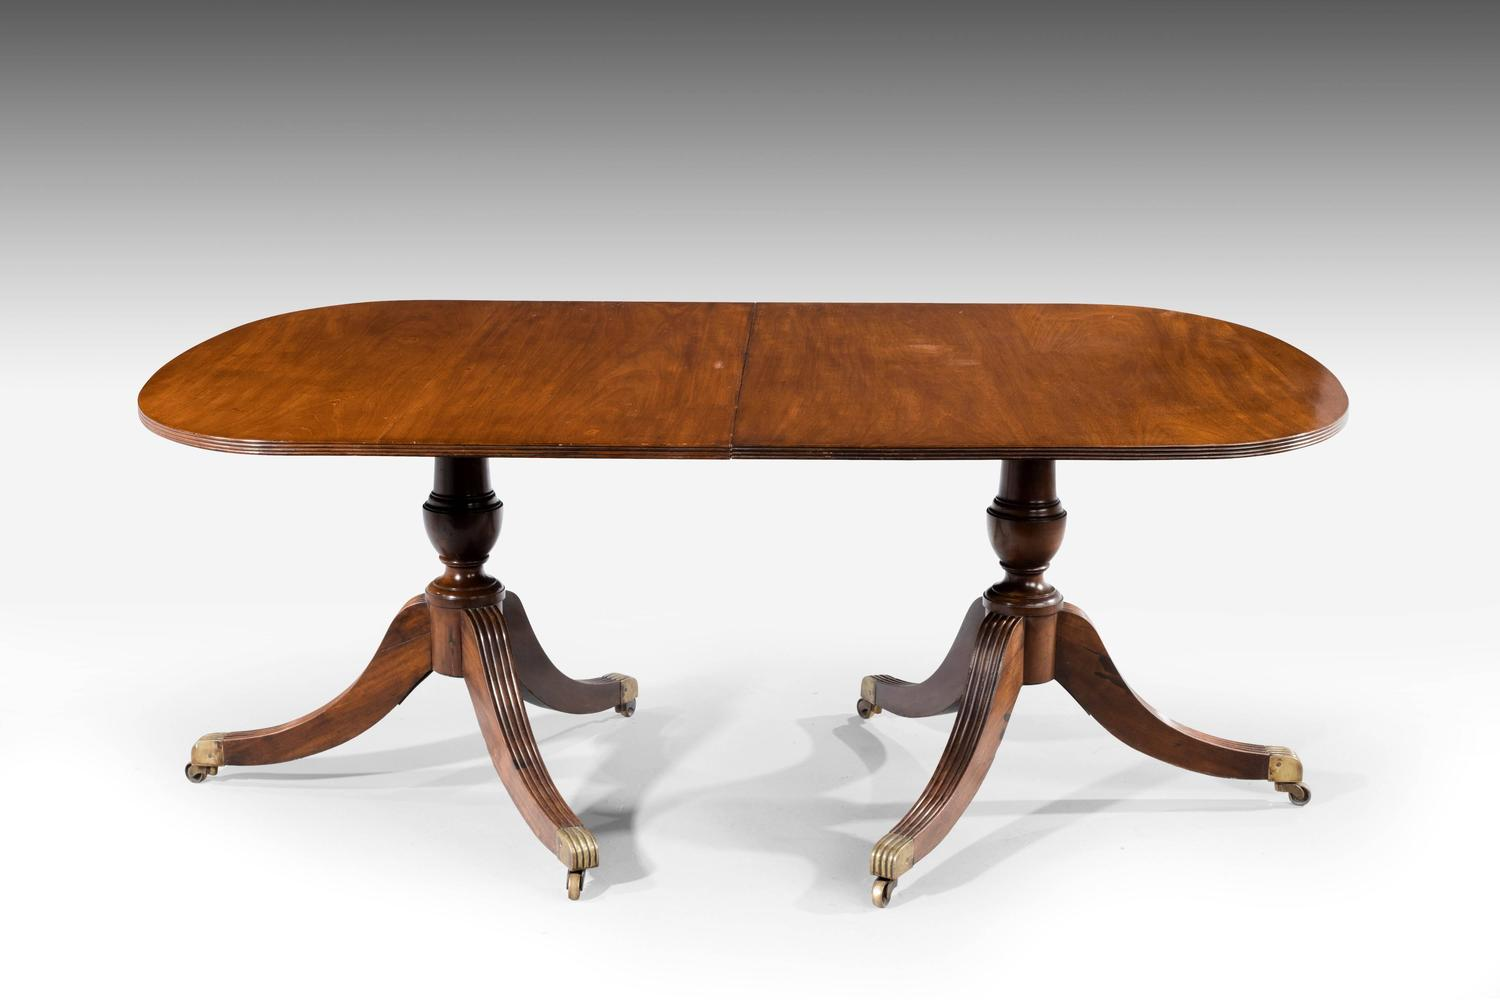 Regency period two pillar dining table for sale at 1stdibs for Pillar dining table